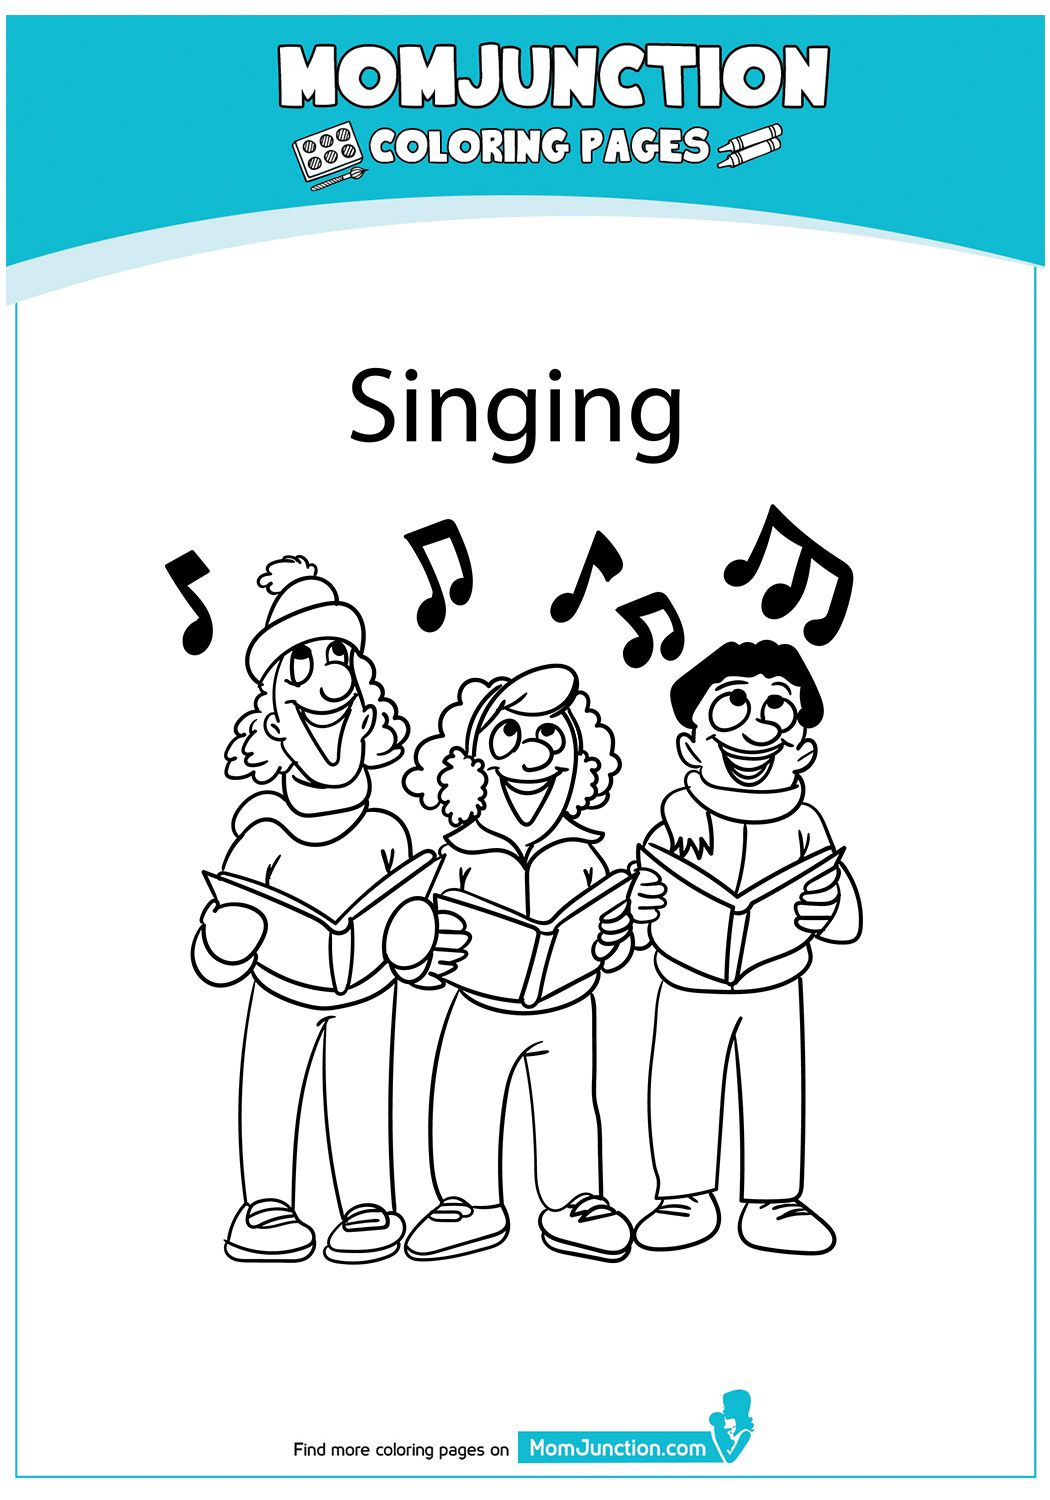 10 Interesting Music Notes Coloring Pages For Your Music Lover Little Kids Coloring Pages Music Coloring Color [ 1500 x 1050 Pixel ]